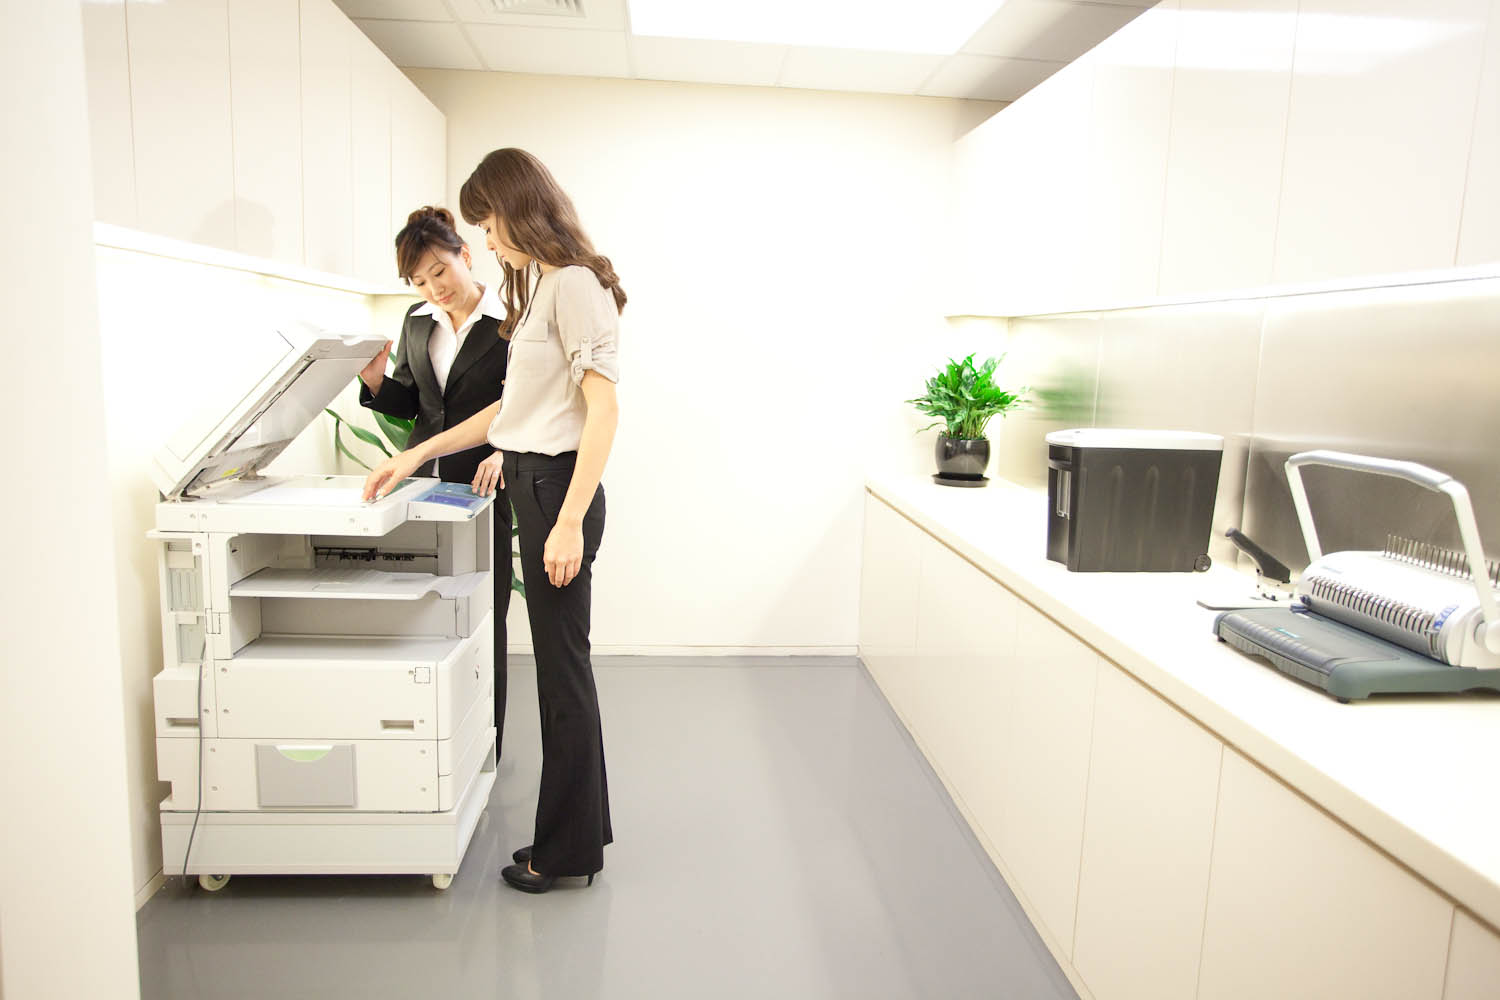 ios printing comes to the office with airprinter from flyingbee